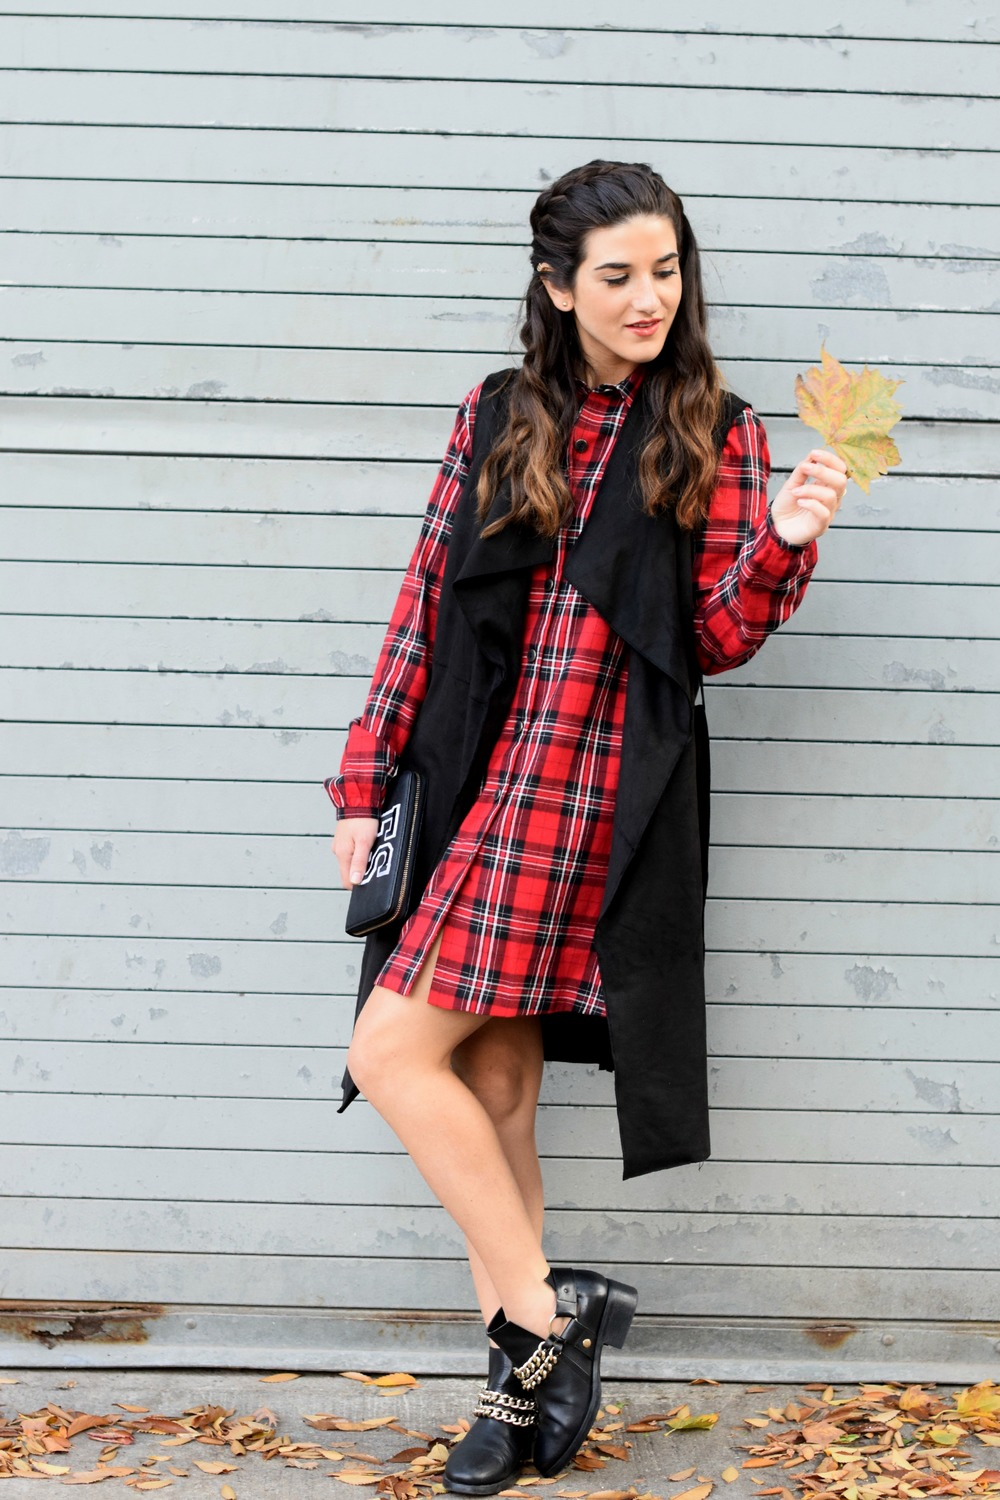 Plaid Dress Long Black Vest Louboutins & Love Fashion Blog NYC Street Style Blogger Fall Weather Season Outfit OOTD Chain Booties Zara Monogram Wallet Hair Braid Inspo Pretty Shirt Shopping Girl Women Photoshoot Model Shoes Wearing Fashionista Leaves.jpg